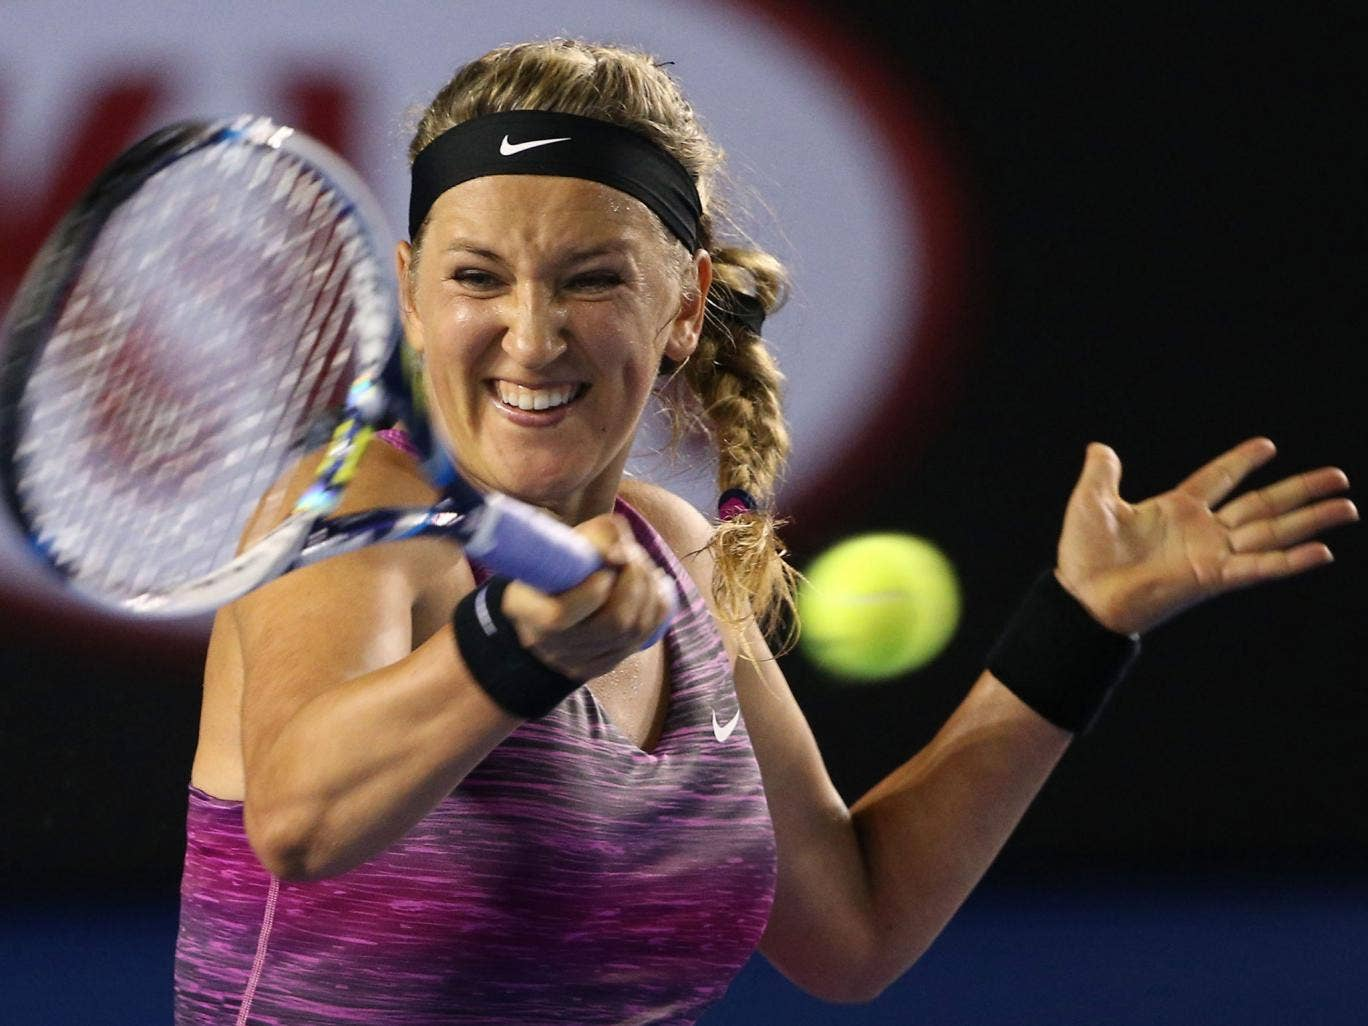 Victoria Azarenka of Belarus plays a forehand in her second round victory over Barbora Zahlavova Strycova of the Czech Republic